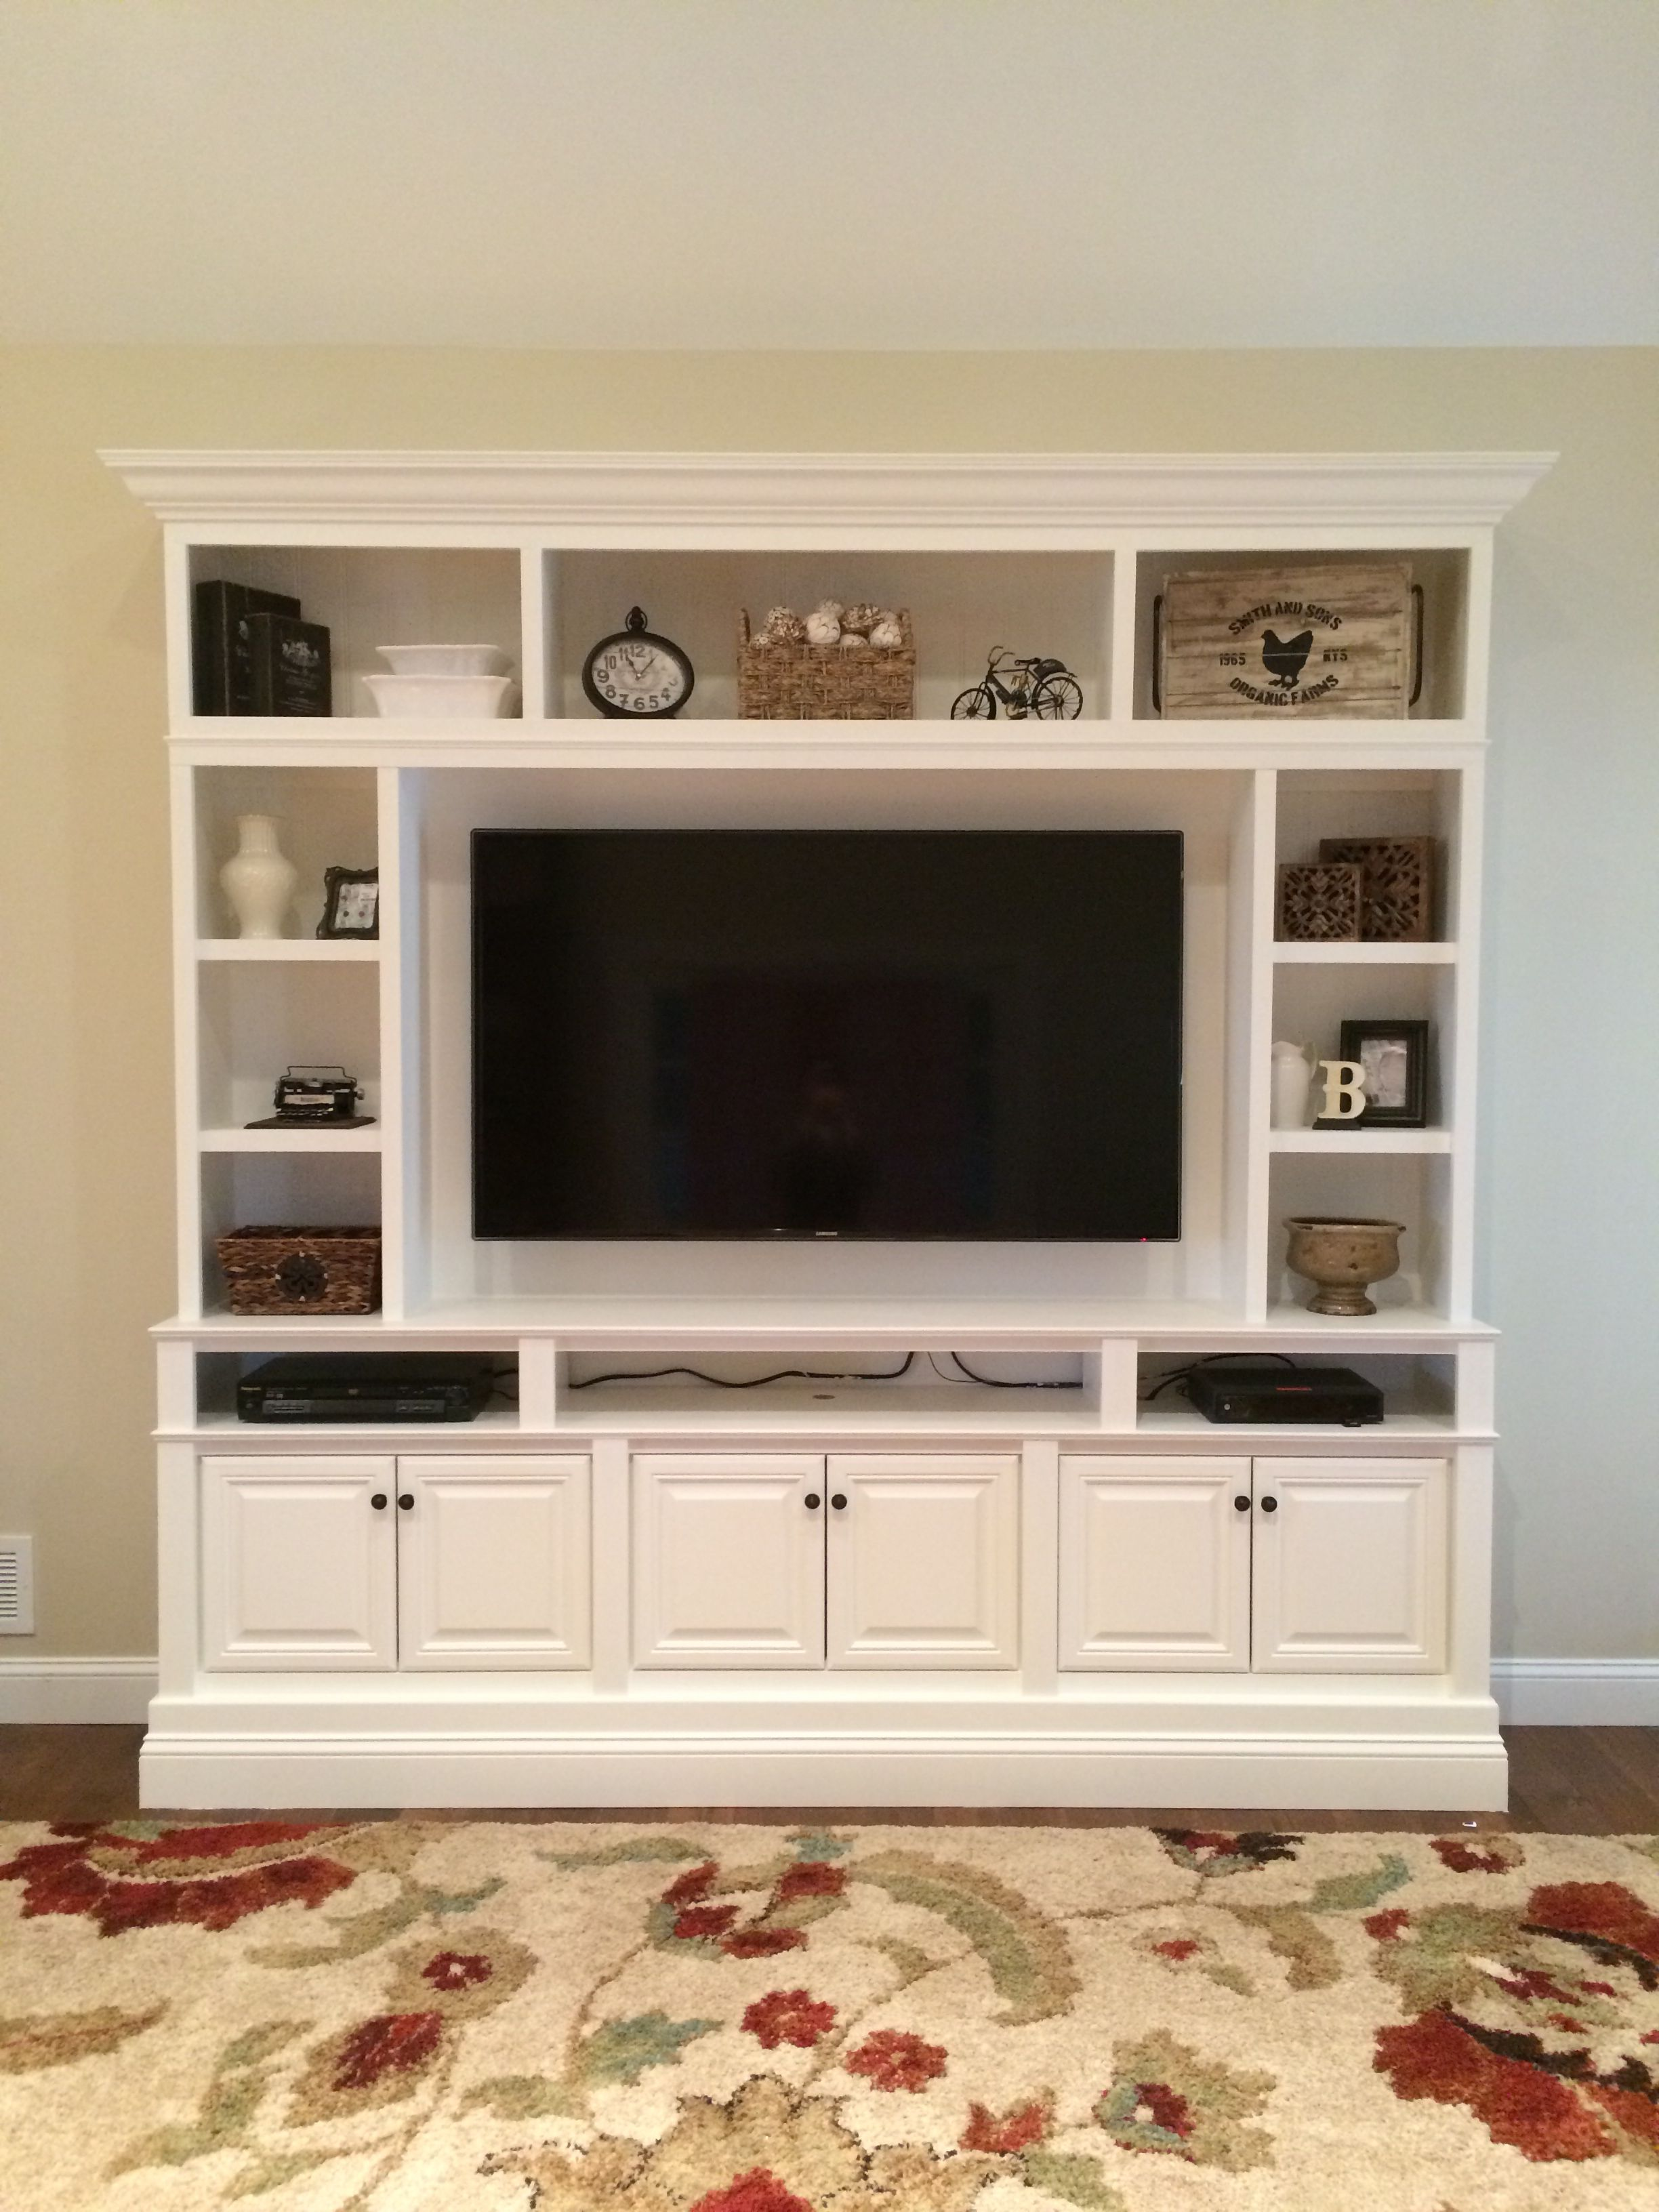 Downright Simple This Is My Diy Built In Wall Unit Made For 60 Tv I Used Three Stock Brown Maple Home Depot Upper Kitchen Cabinets 30 Wide X 18